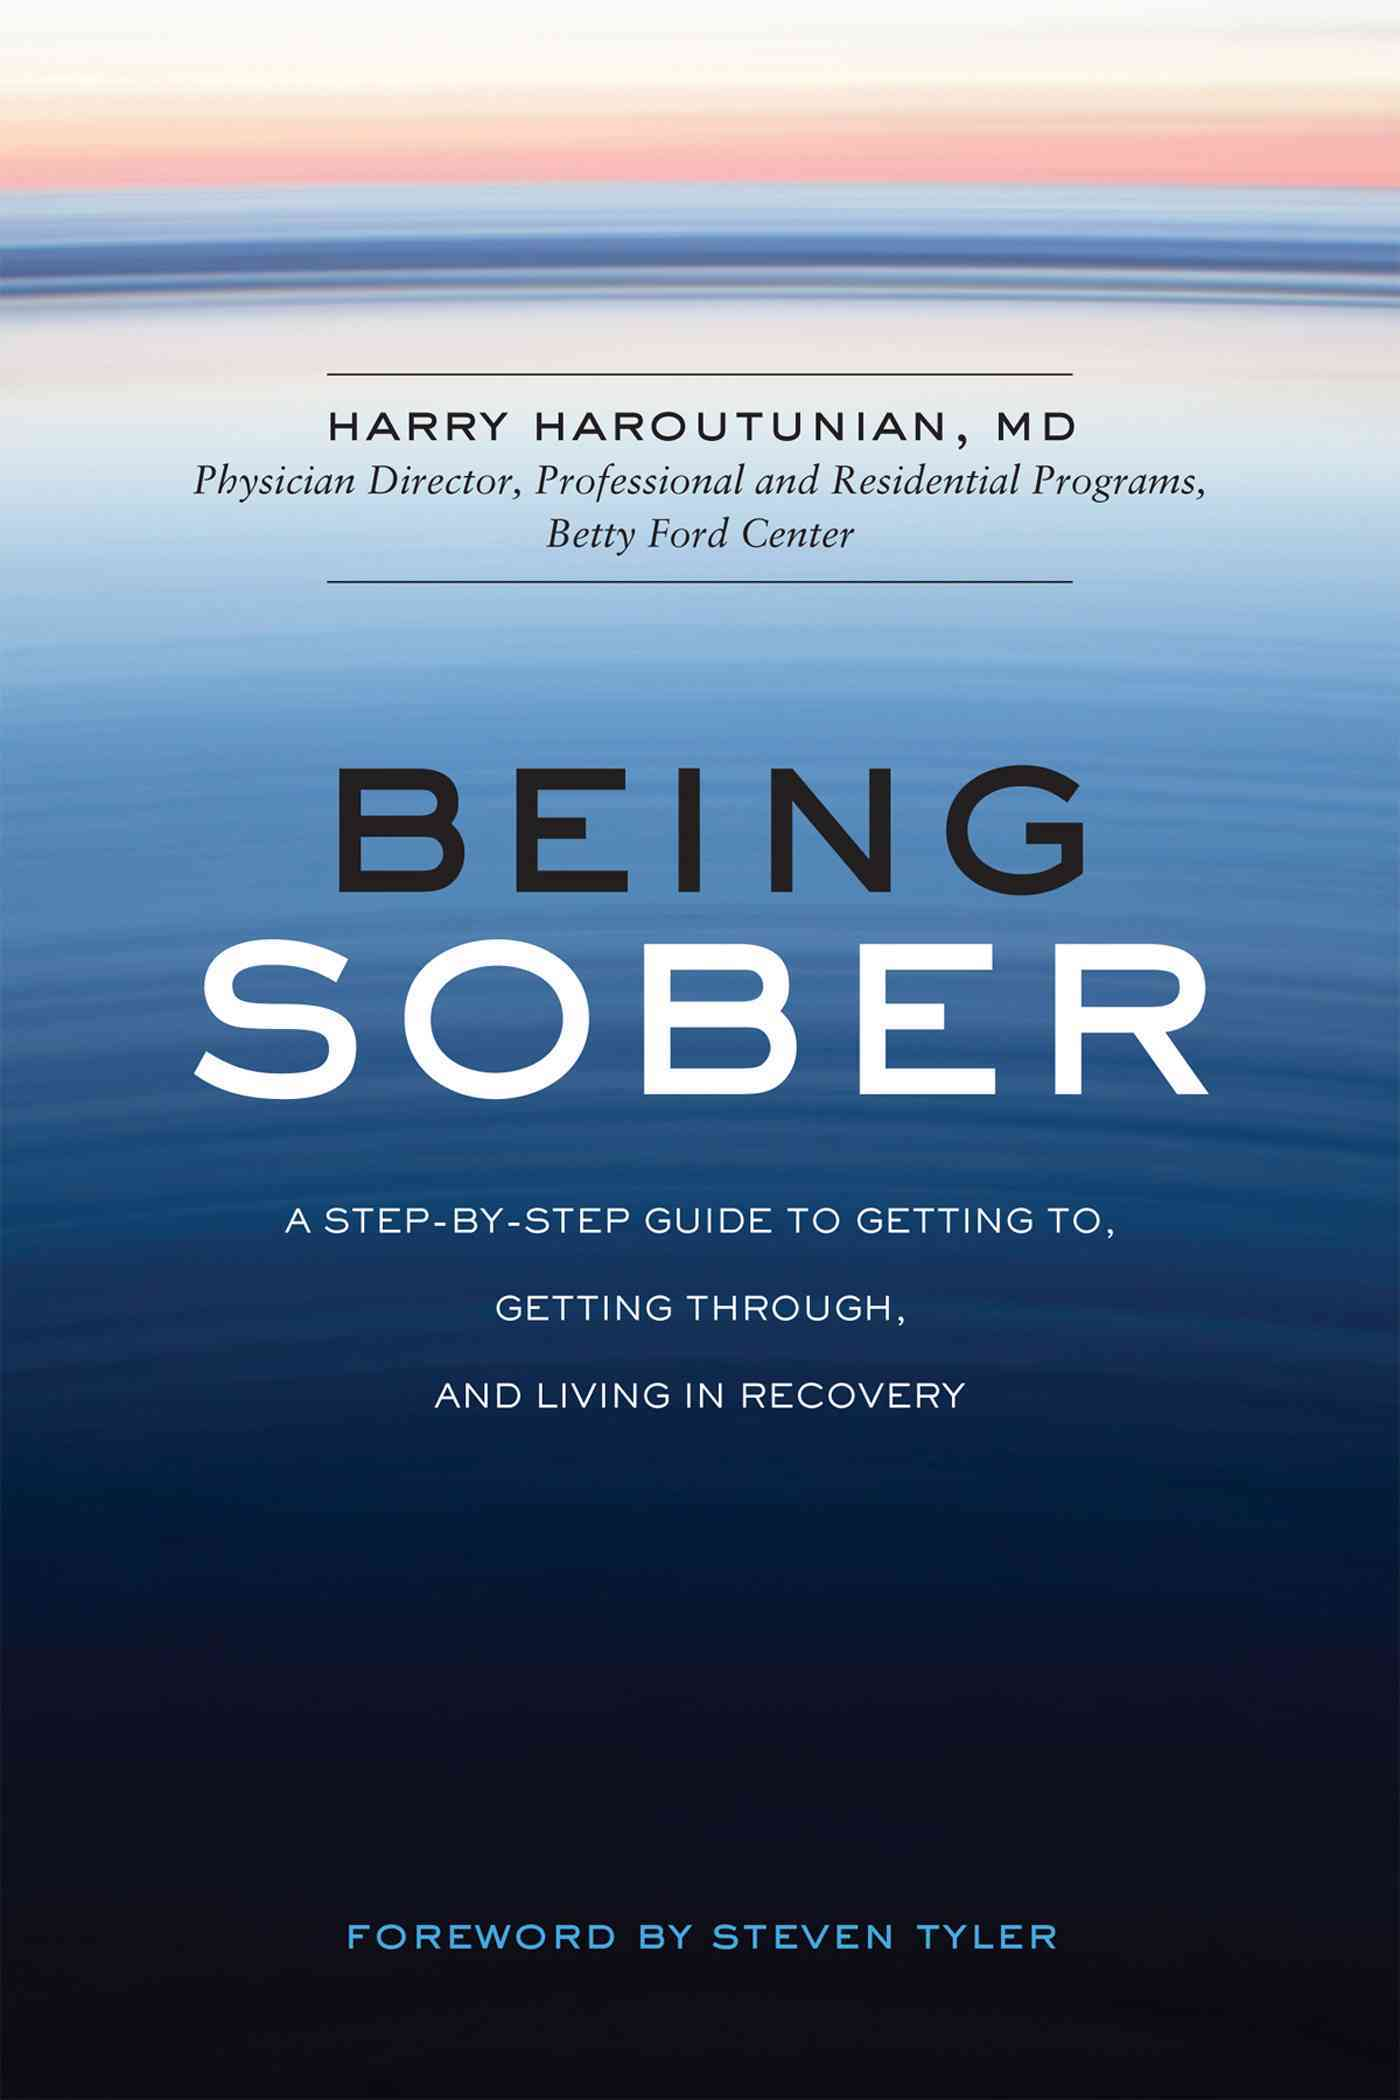 Being Sober By Haroutunian, Harry/ Tyler, Steven (FRW)